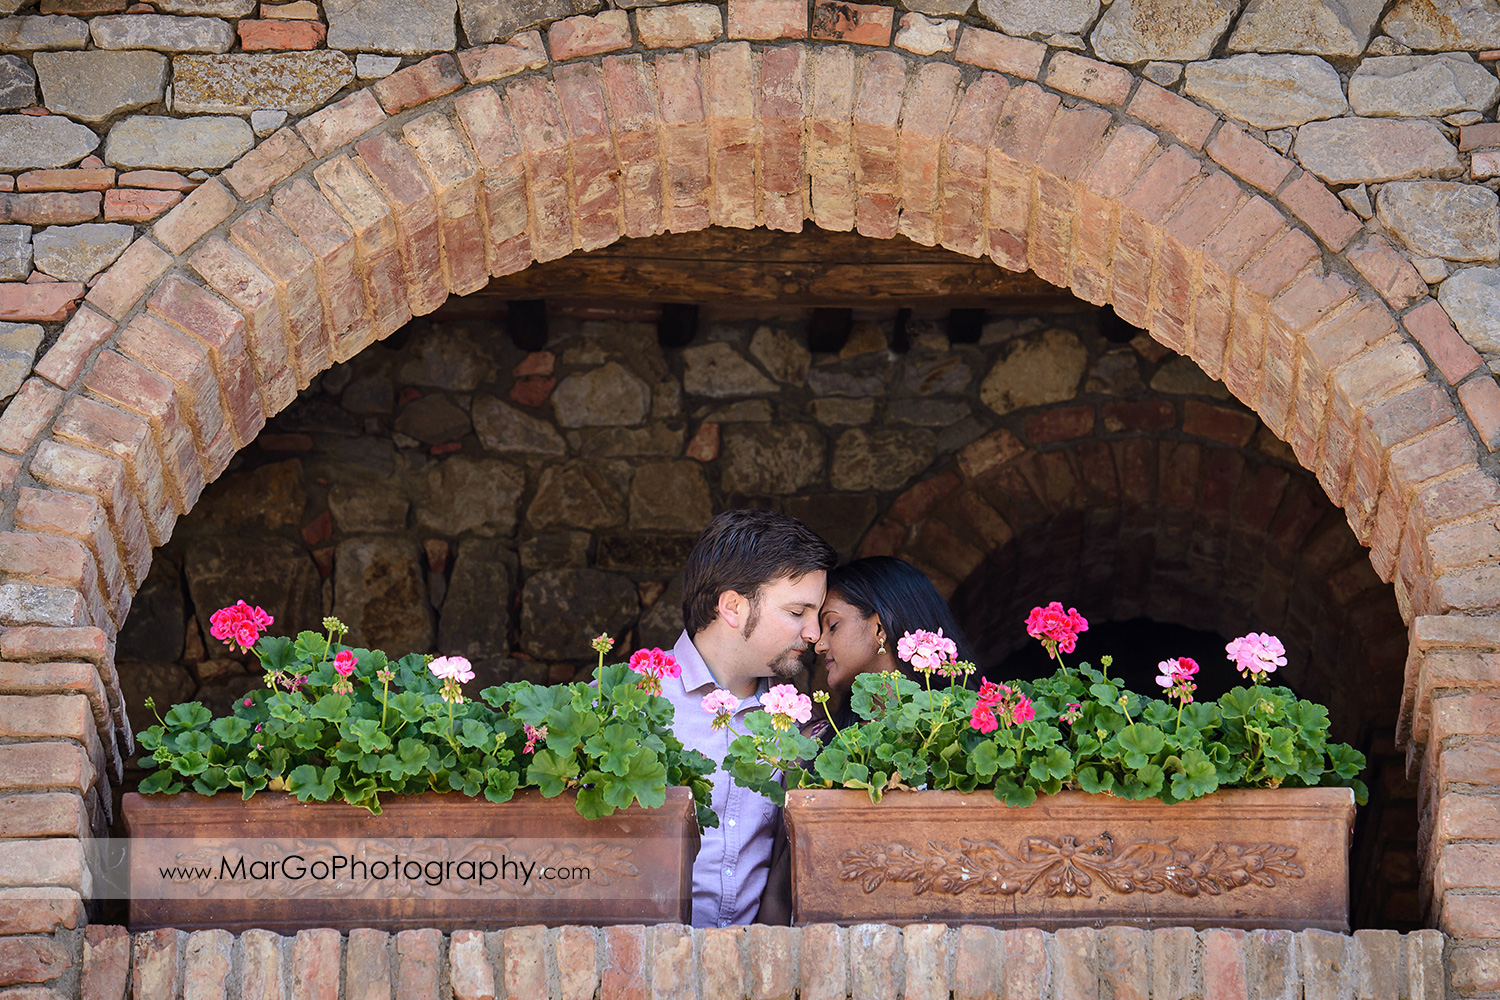 portrait of man in pink shirt and Indian woman in flower dress touching foreheads under brick arch during engagement session at Castello di Amorosa in Calistoga